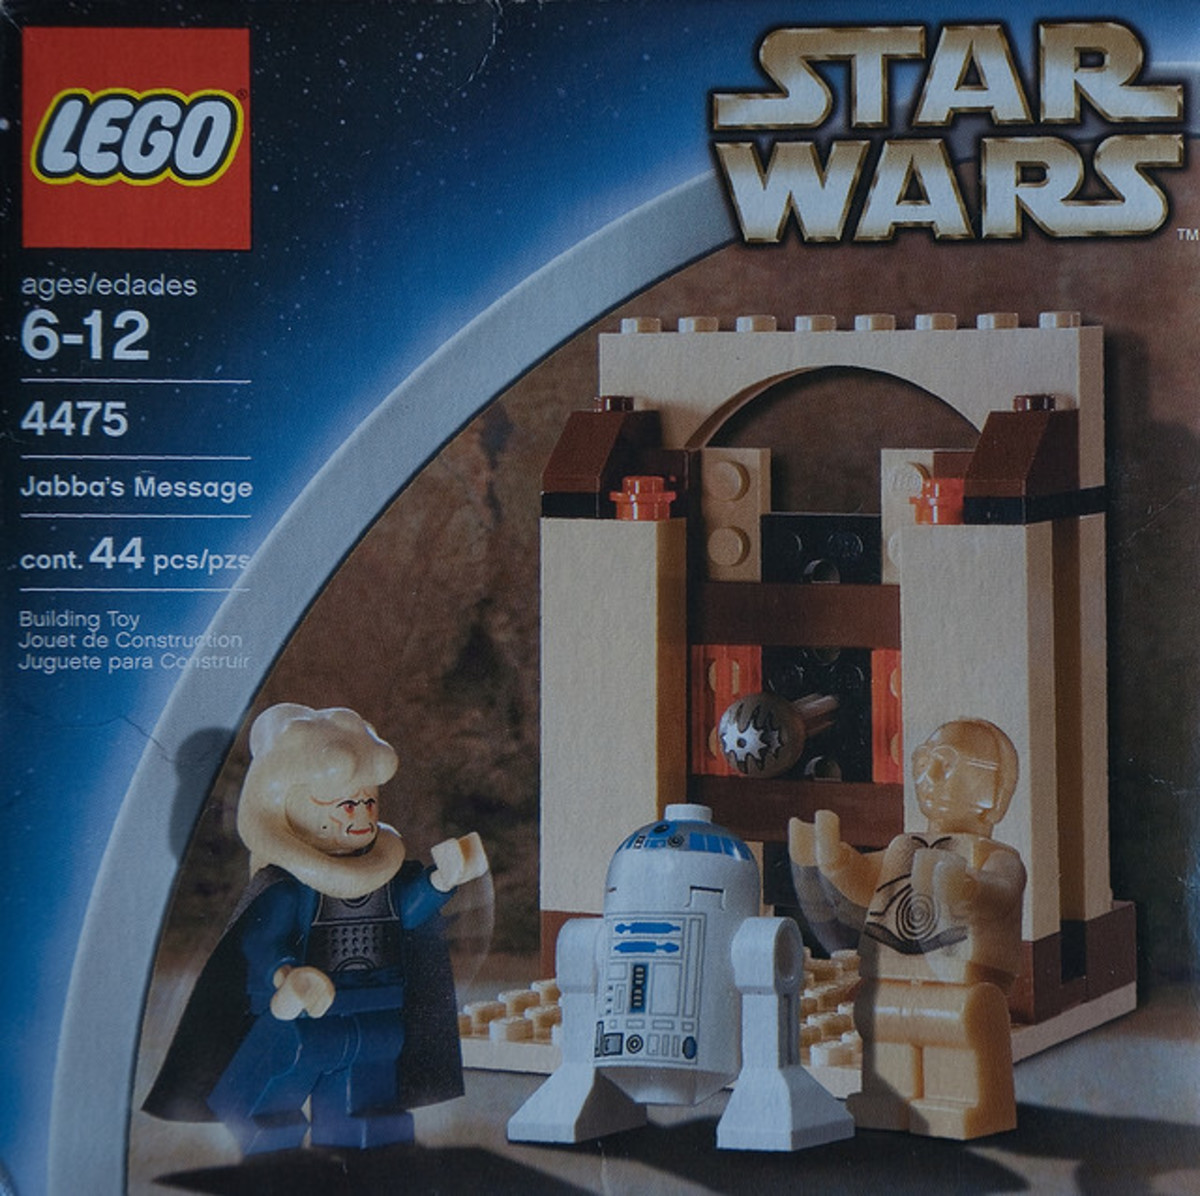 LEGO Star Wars Jabba's Message 4475 Box